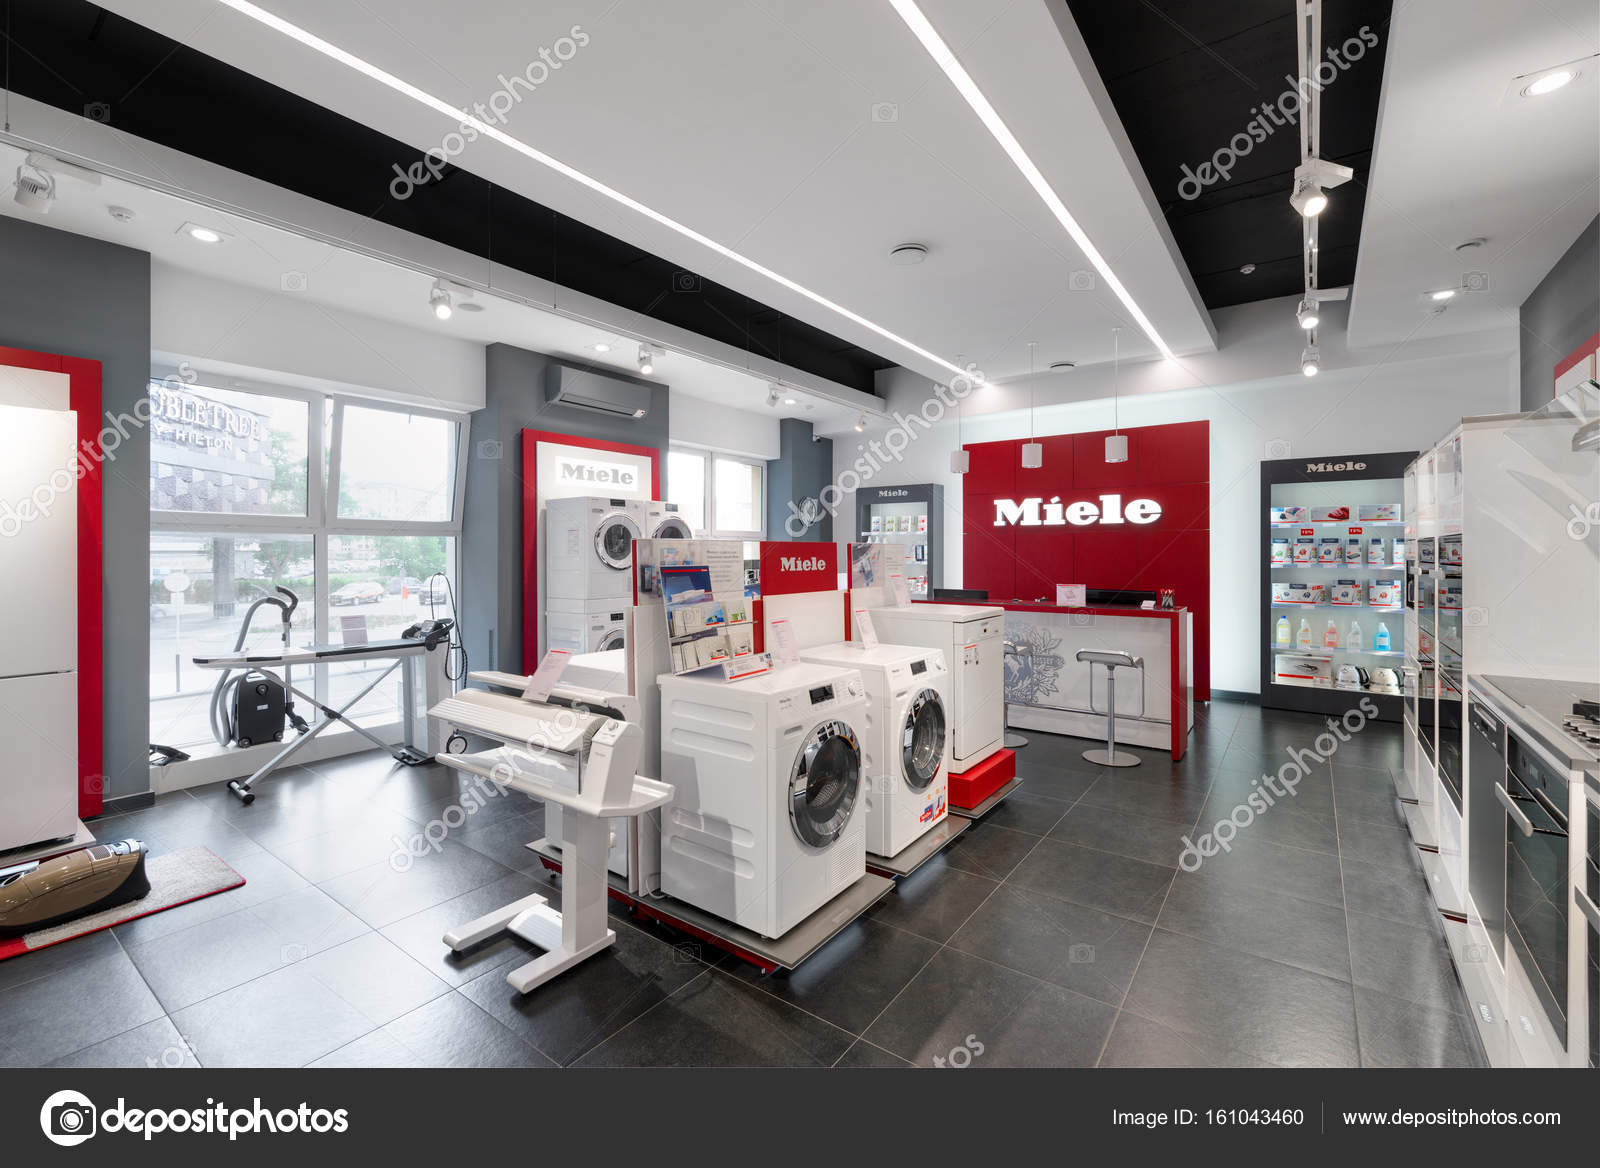 Miele Cocinas Minsk Belarus June 25 2017 Miele Sales Office In Minsk